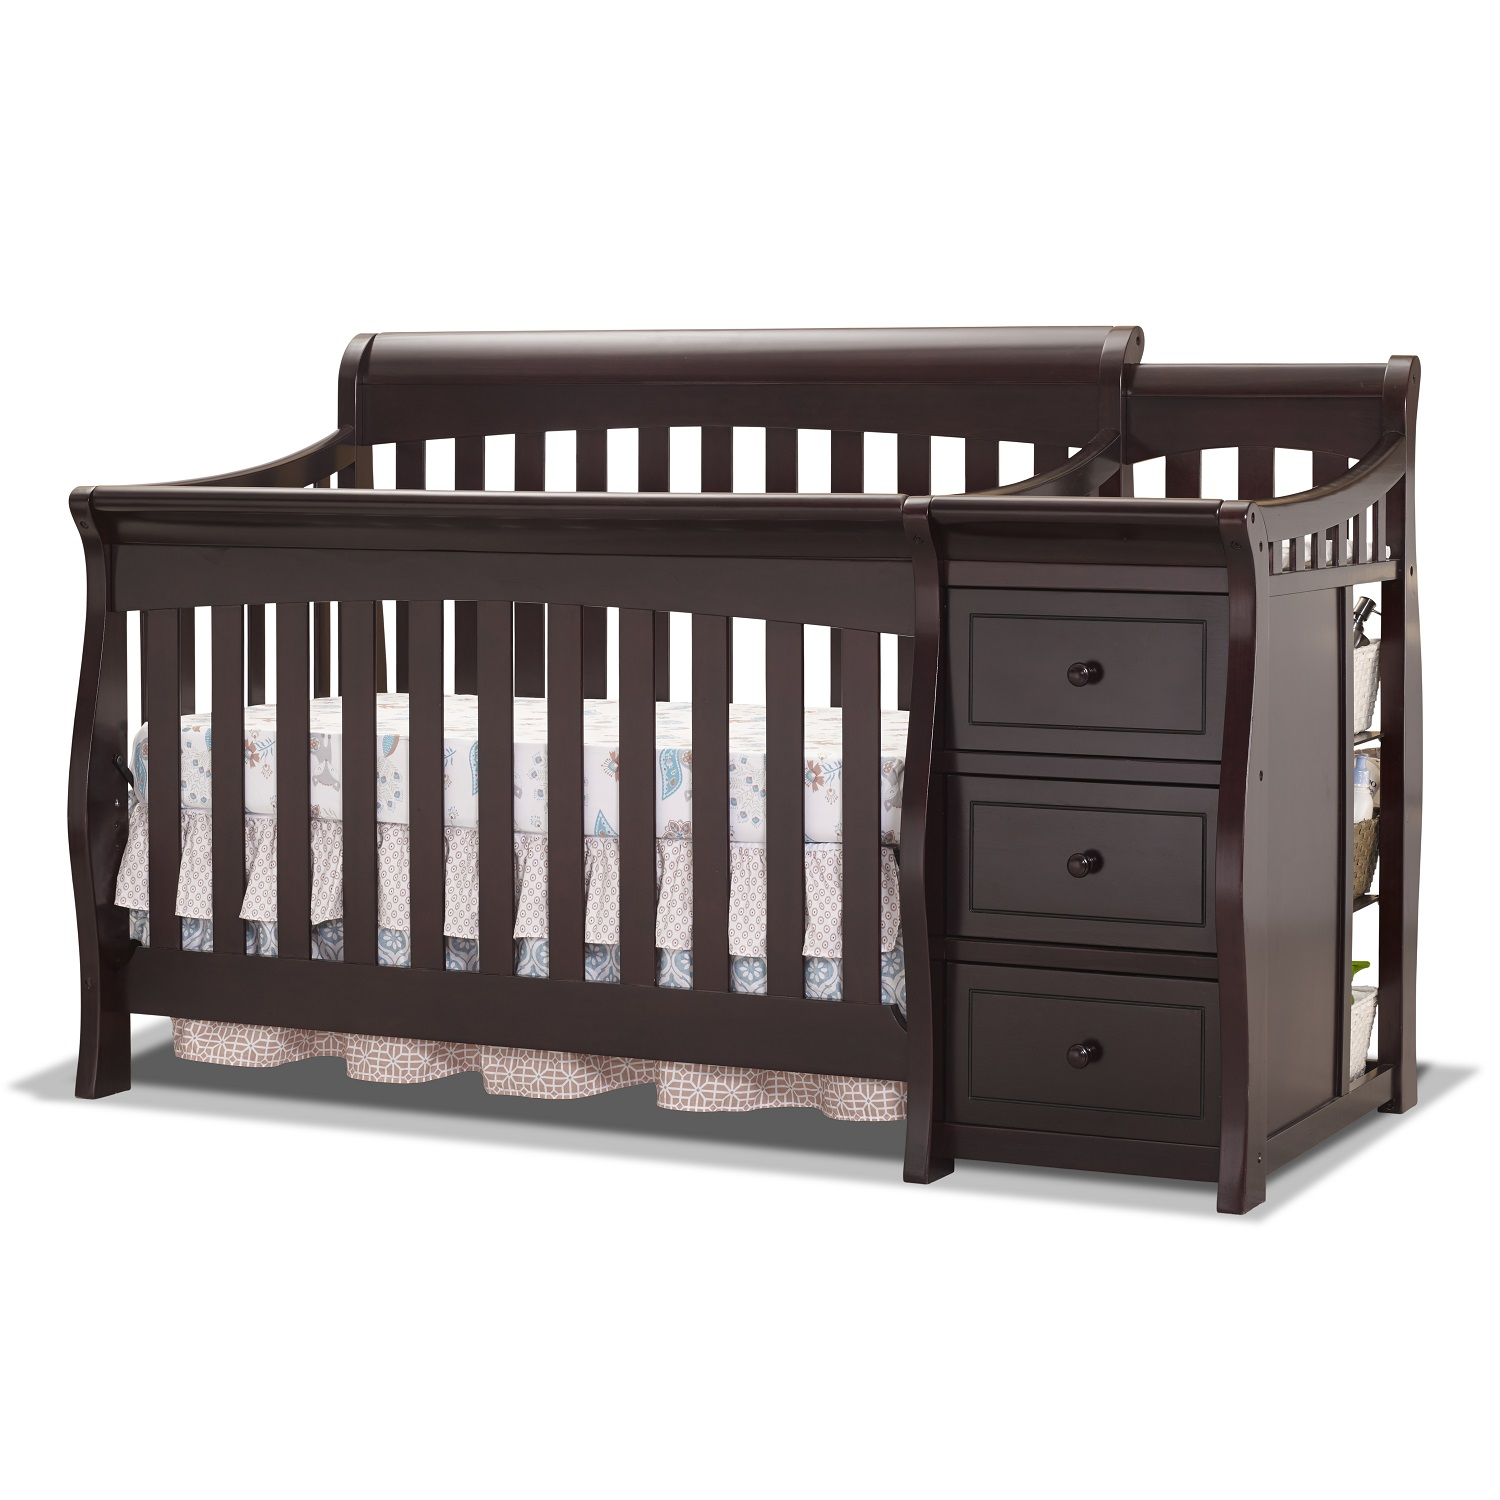 Sorelle Tuscany 4-in-1 Convertible Crib and Changer White